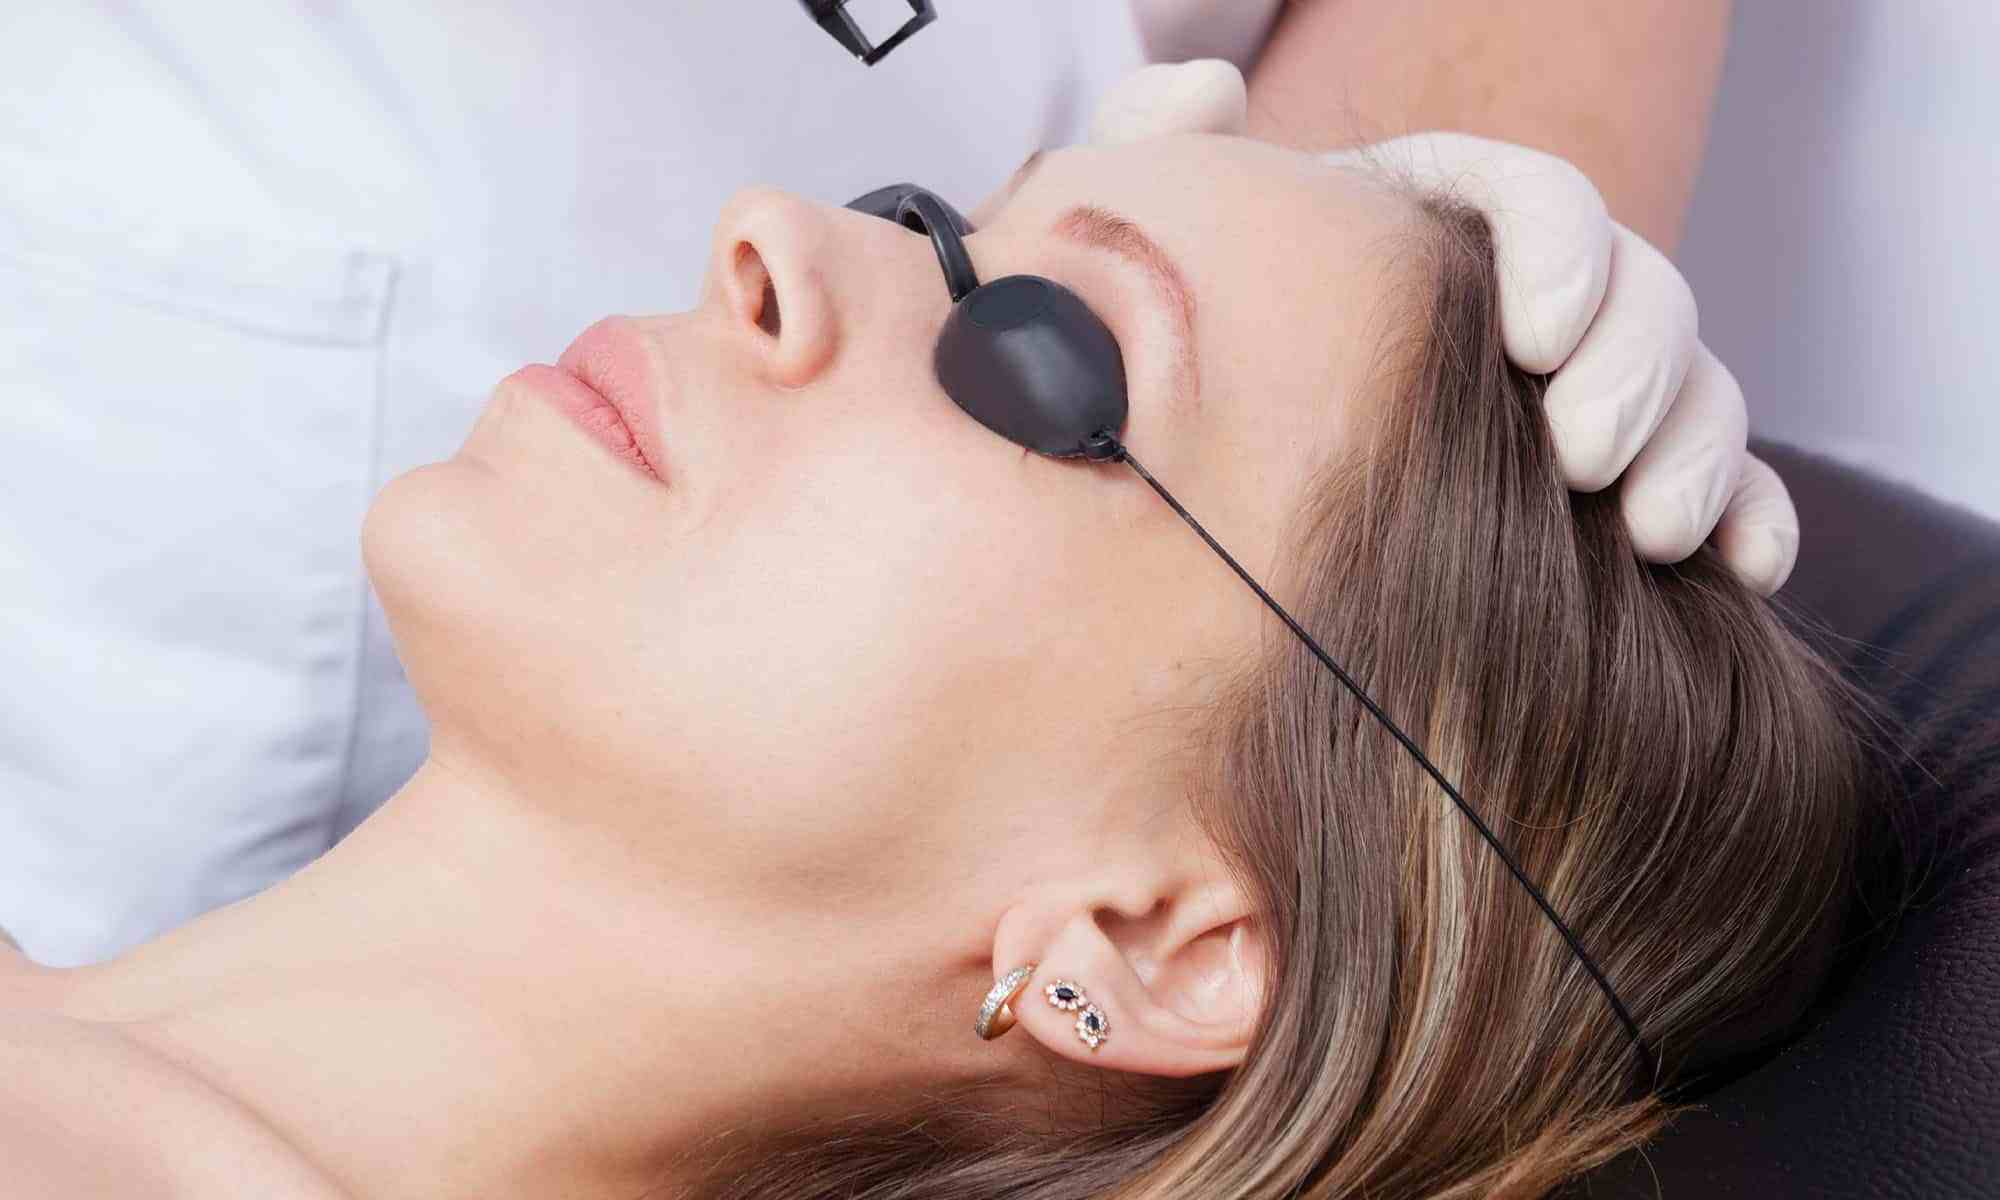 Ocular protection device for laser hair removal on the face